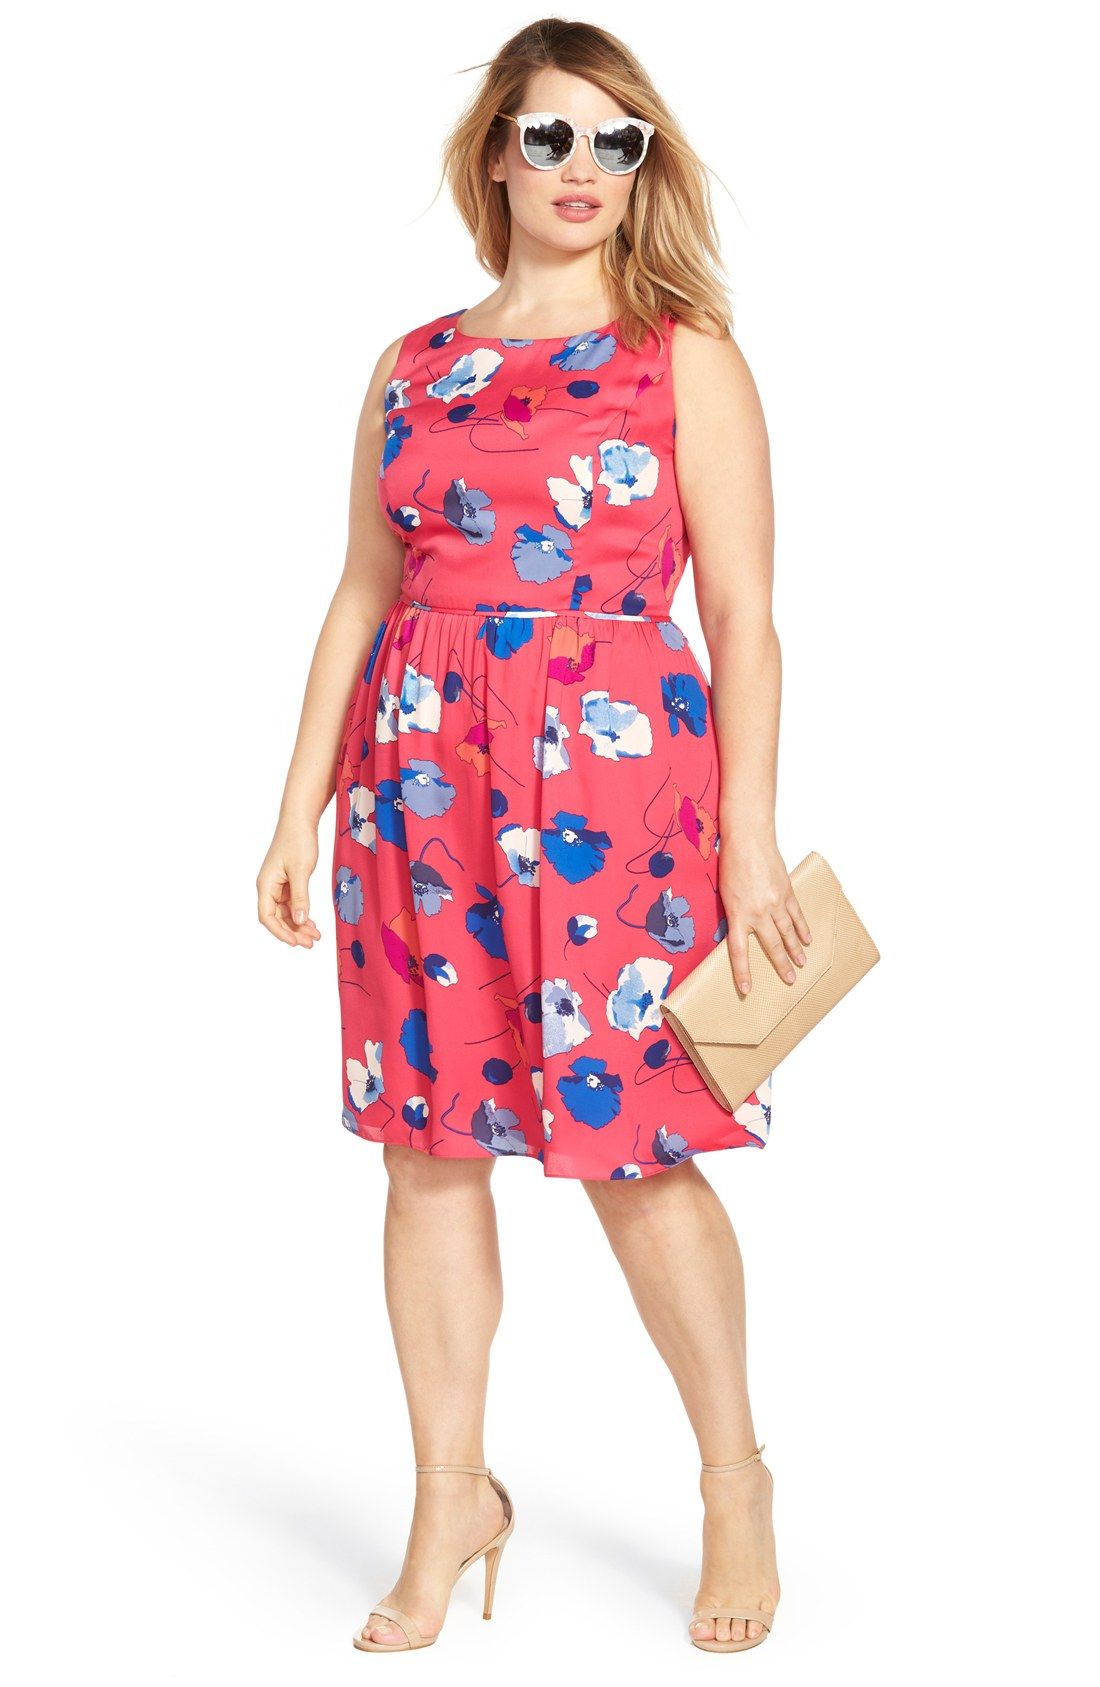 Adrianna Papell Print Dress & Accessories (Plus Size)